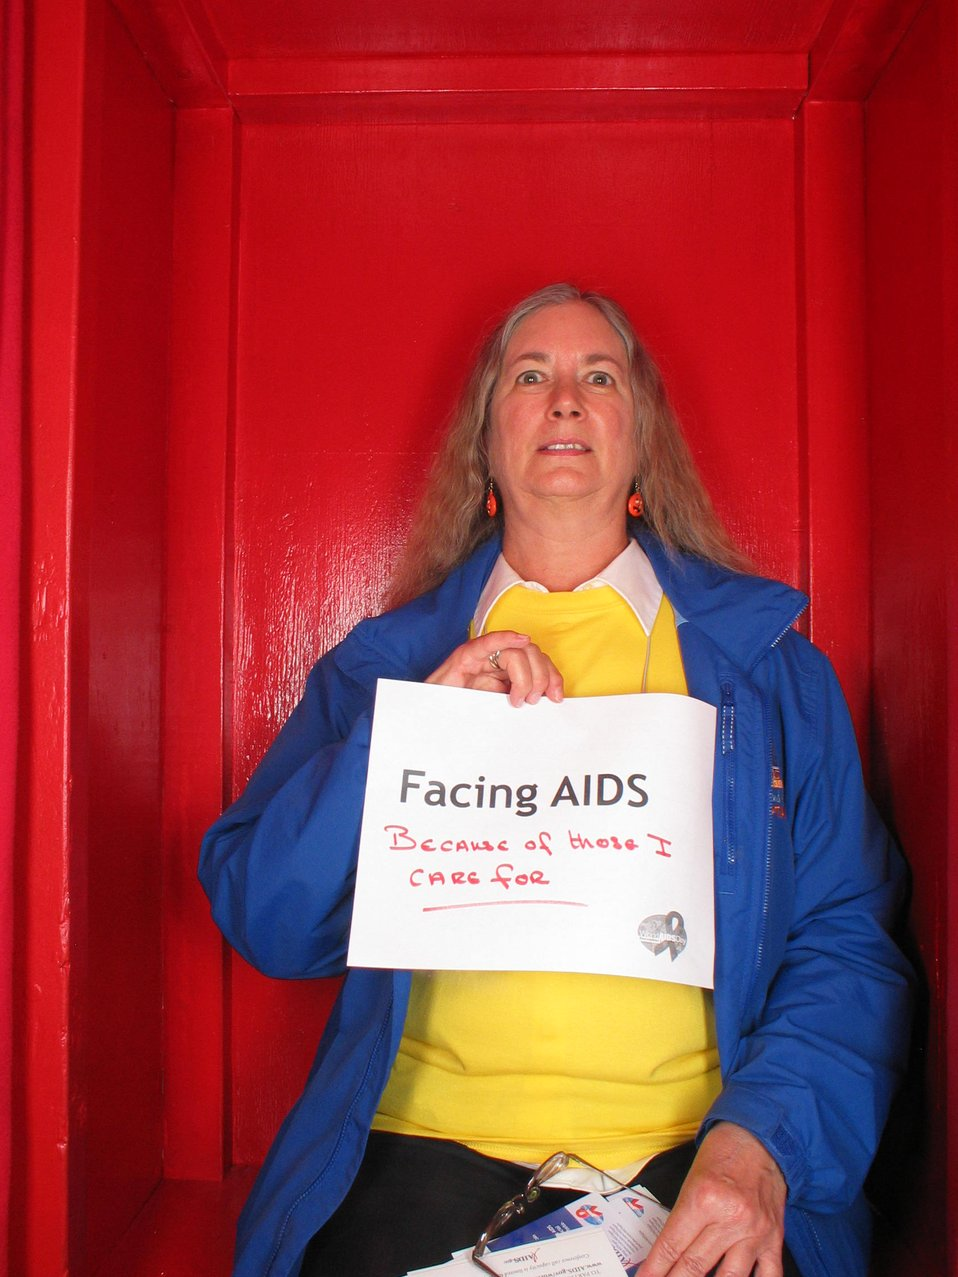 Facing AIDS because of those I care for